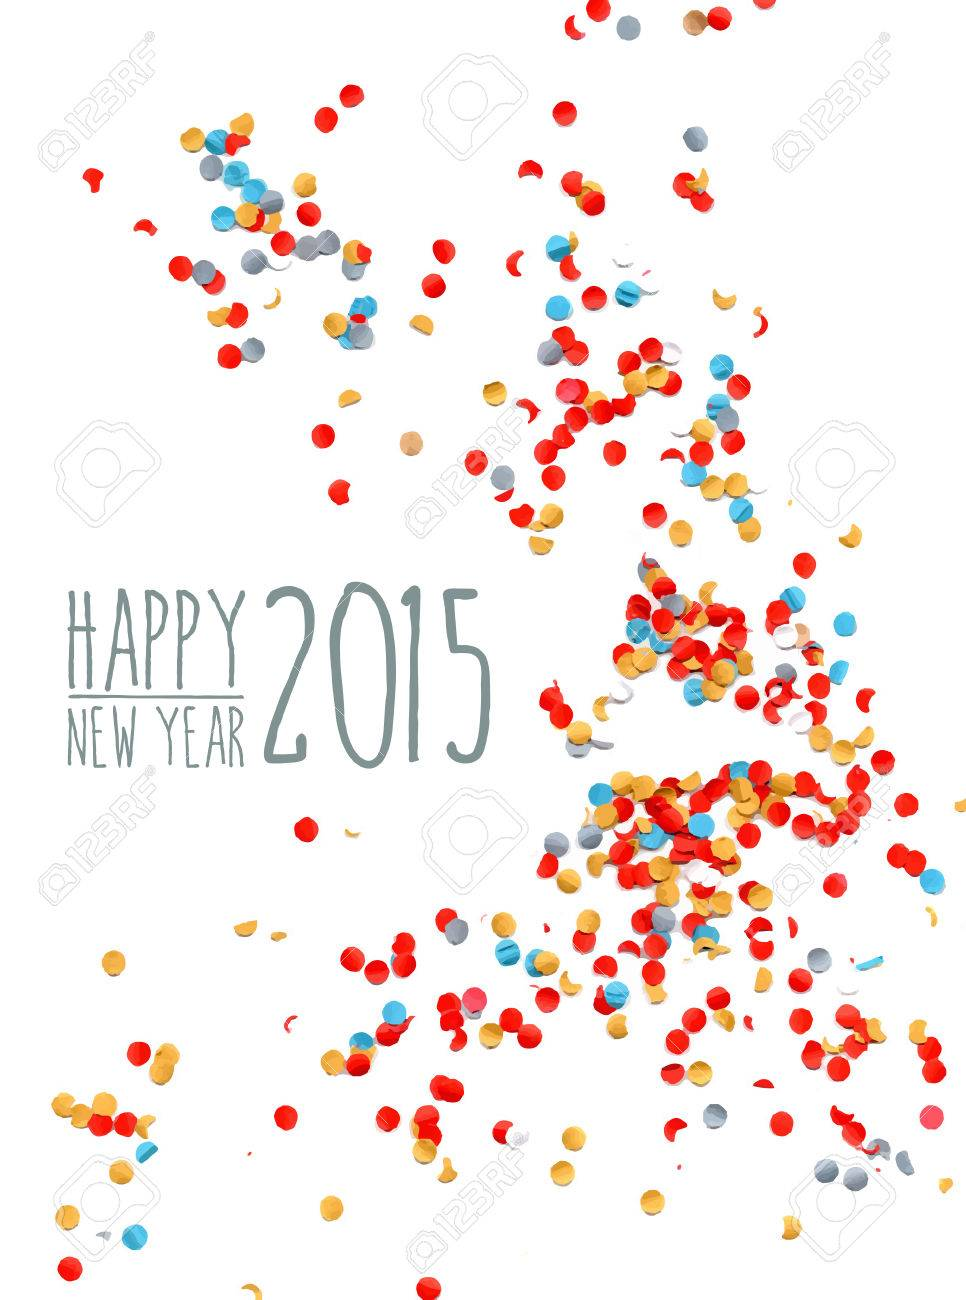 Happy New Year 2015 Celebration With Colorful Confetti Paper